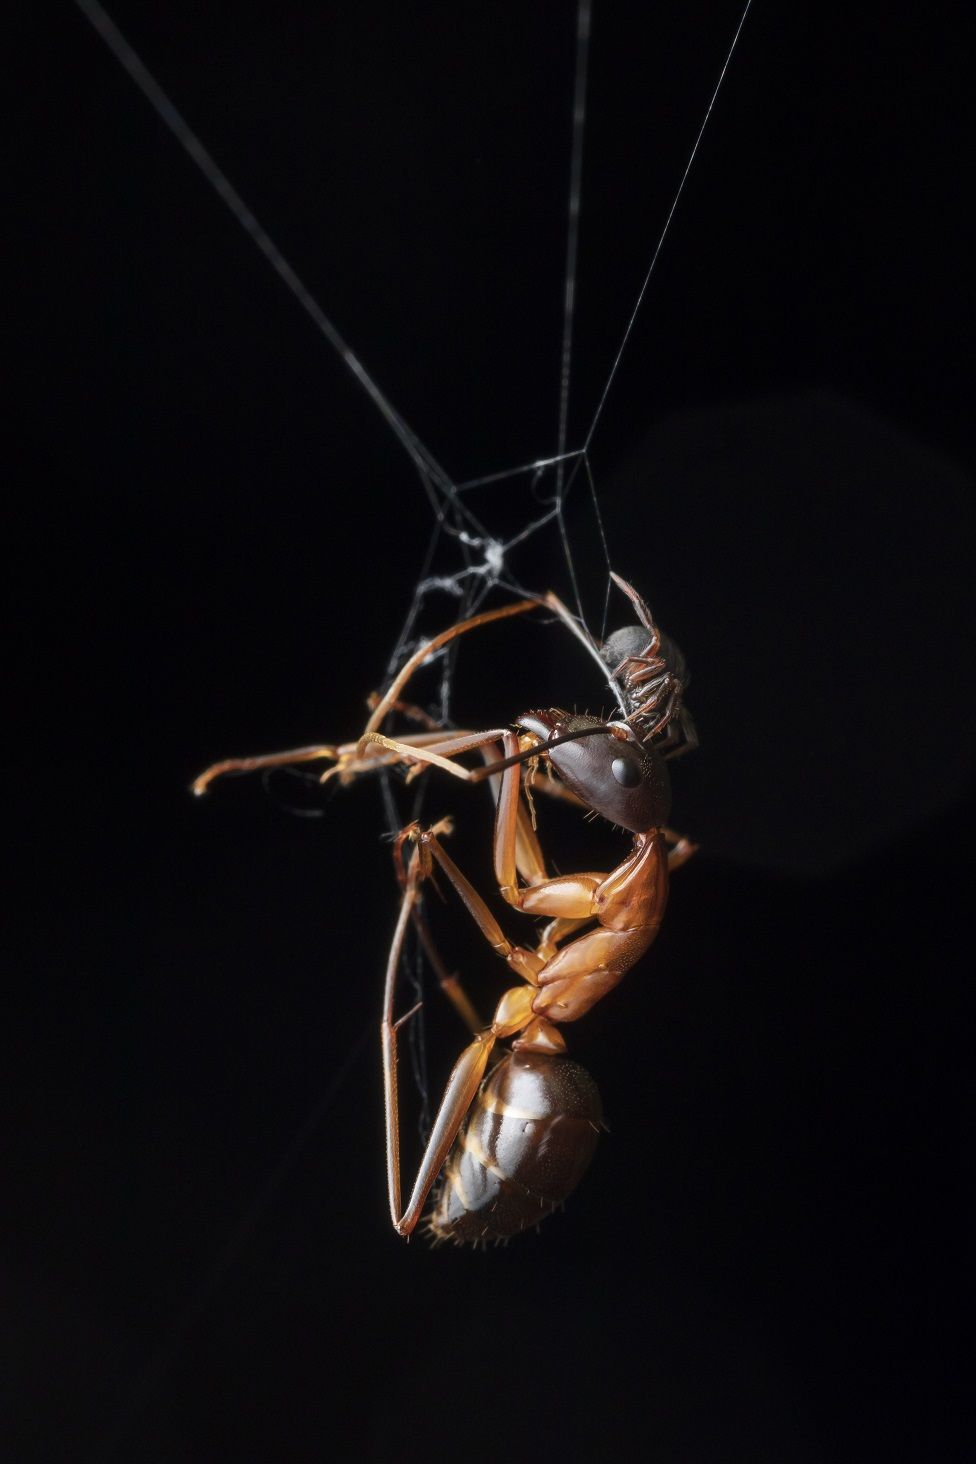 A spider with an ant in a web